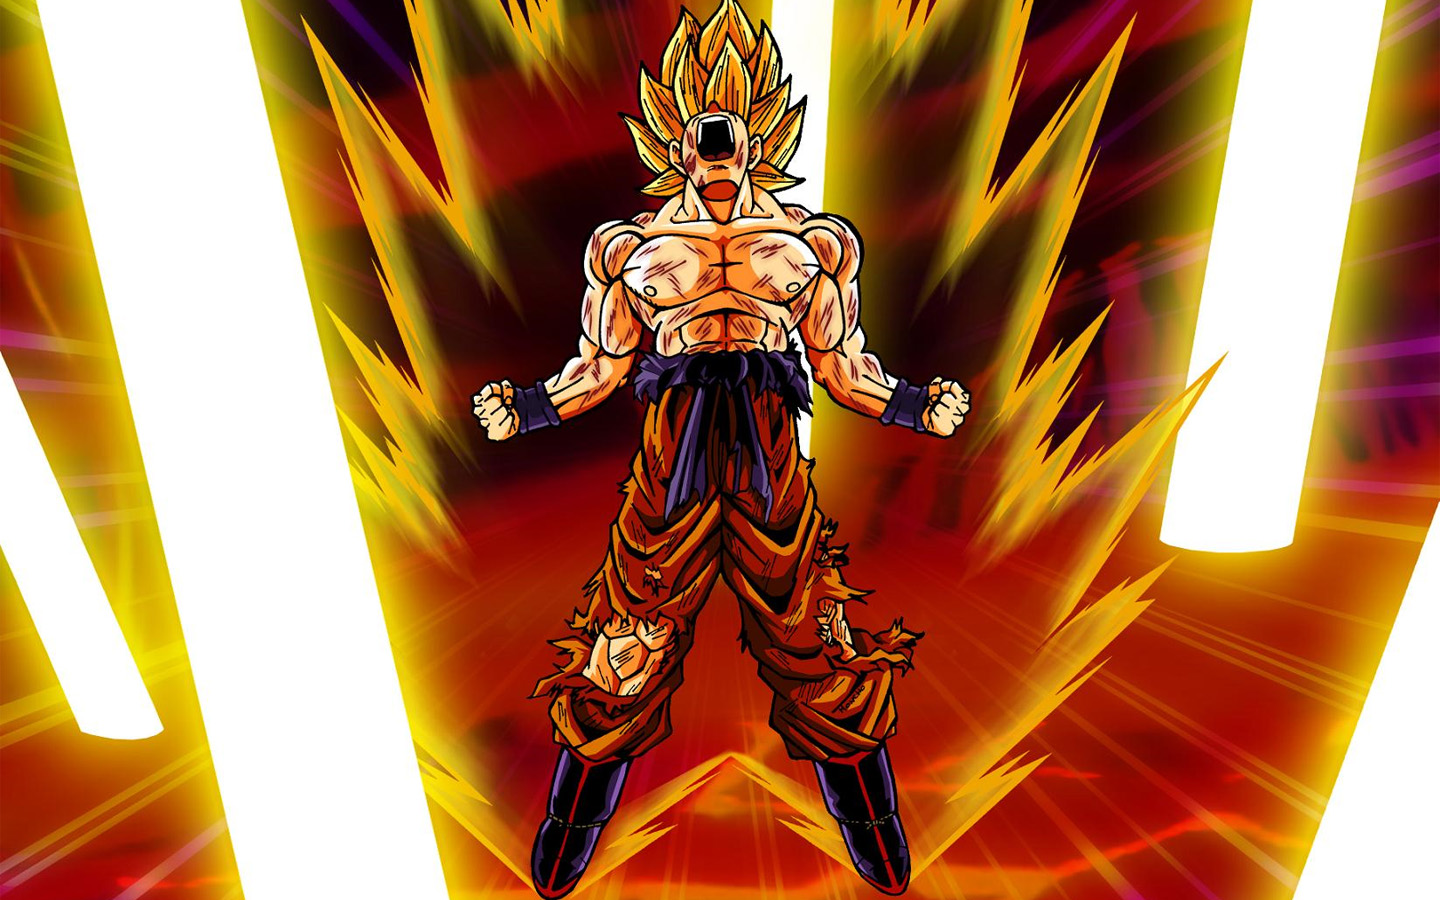 Goku Images HD Wallpaper And Background Photos